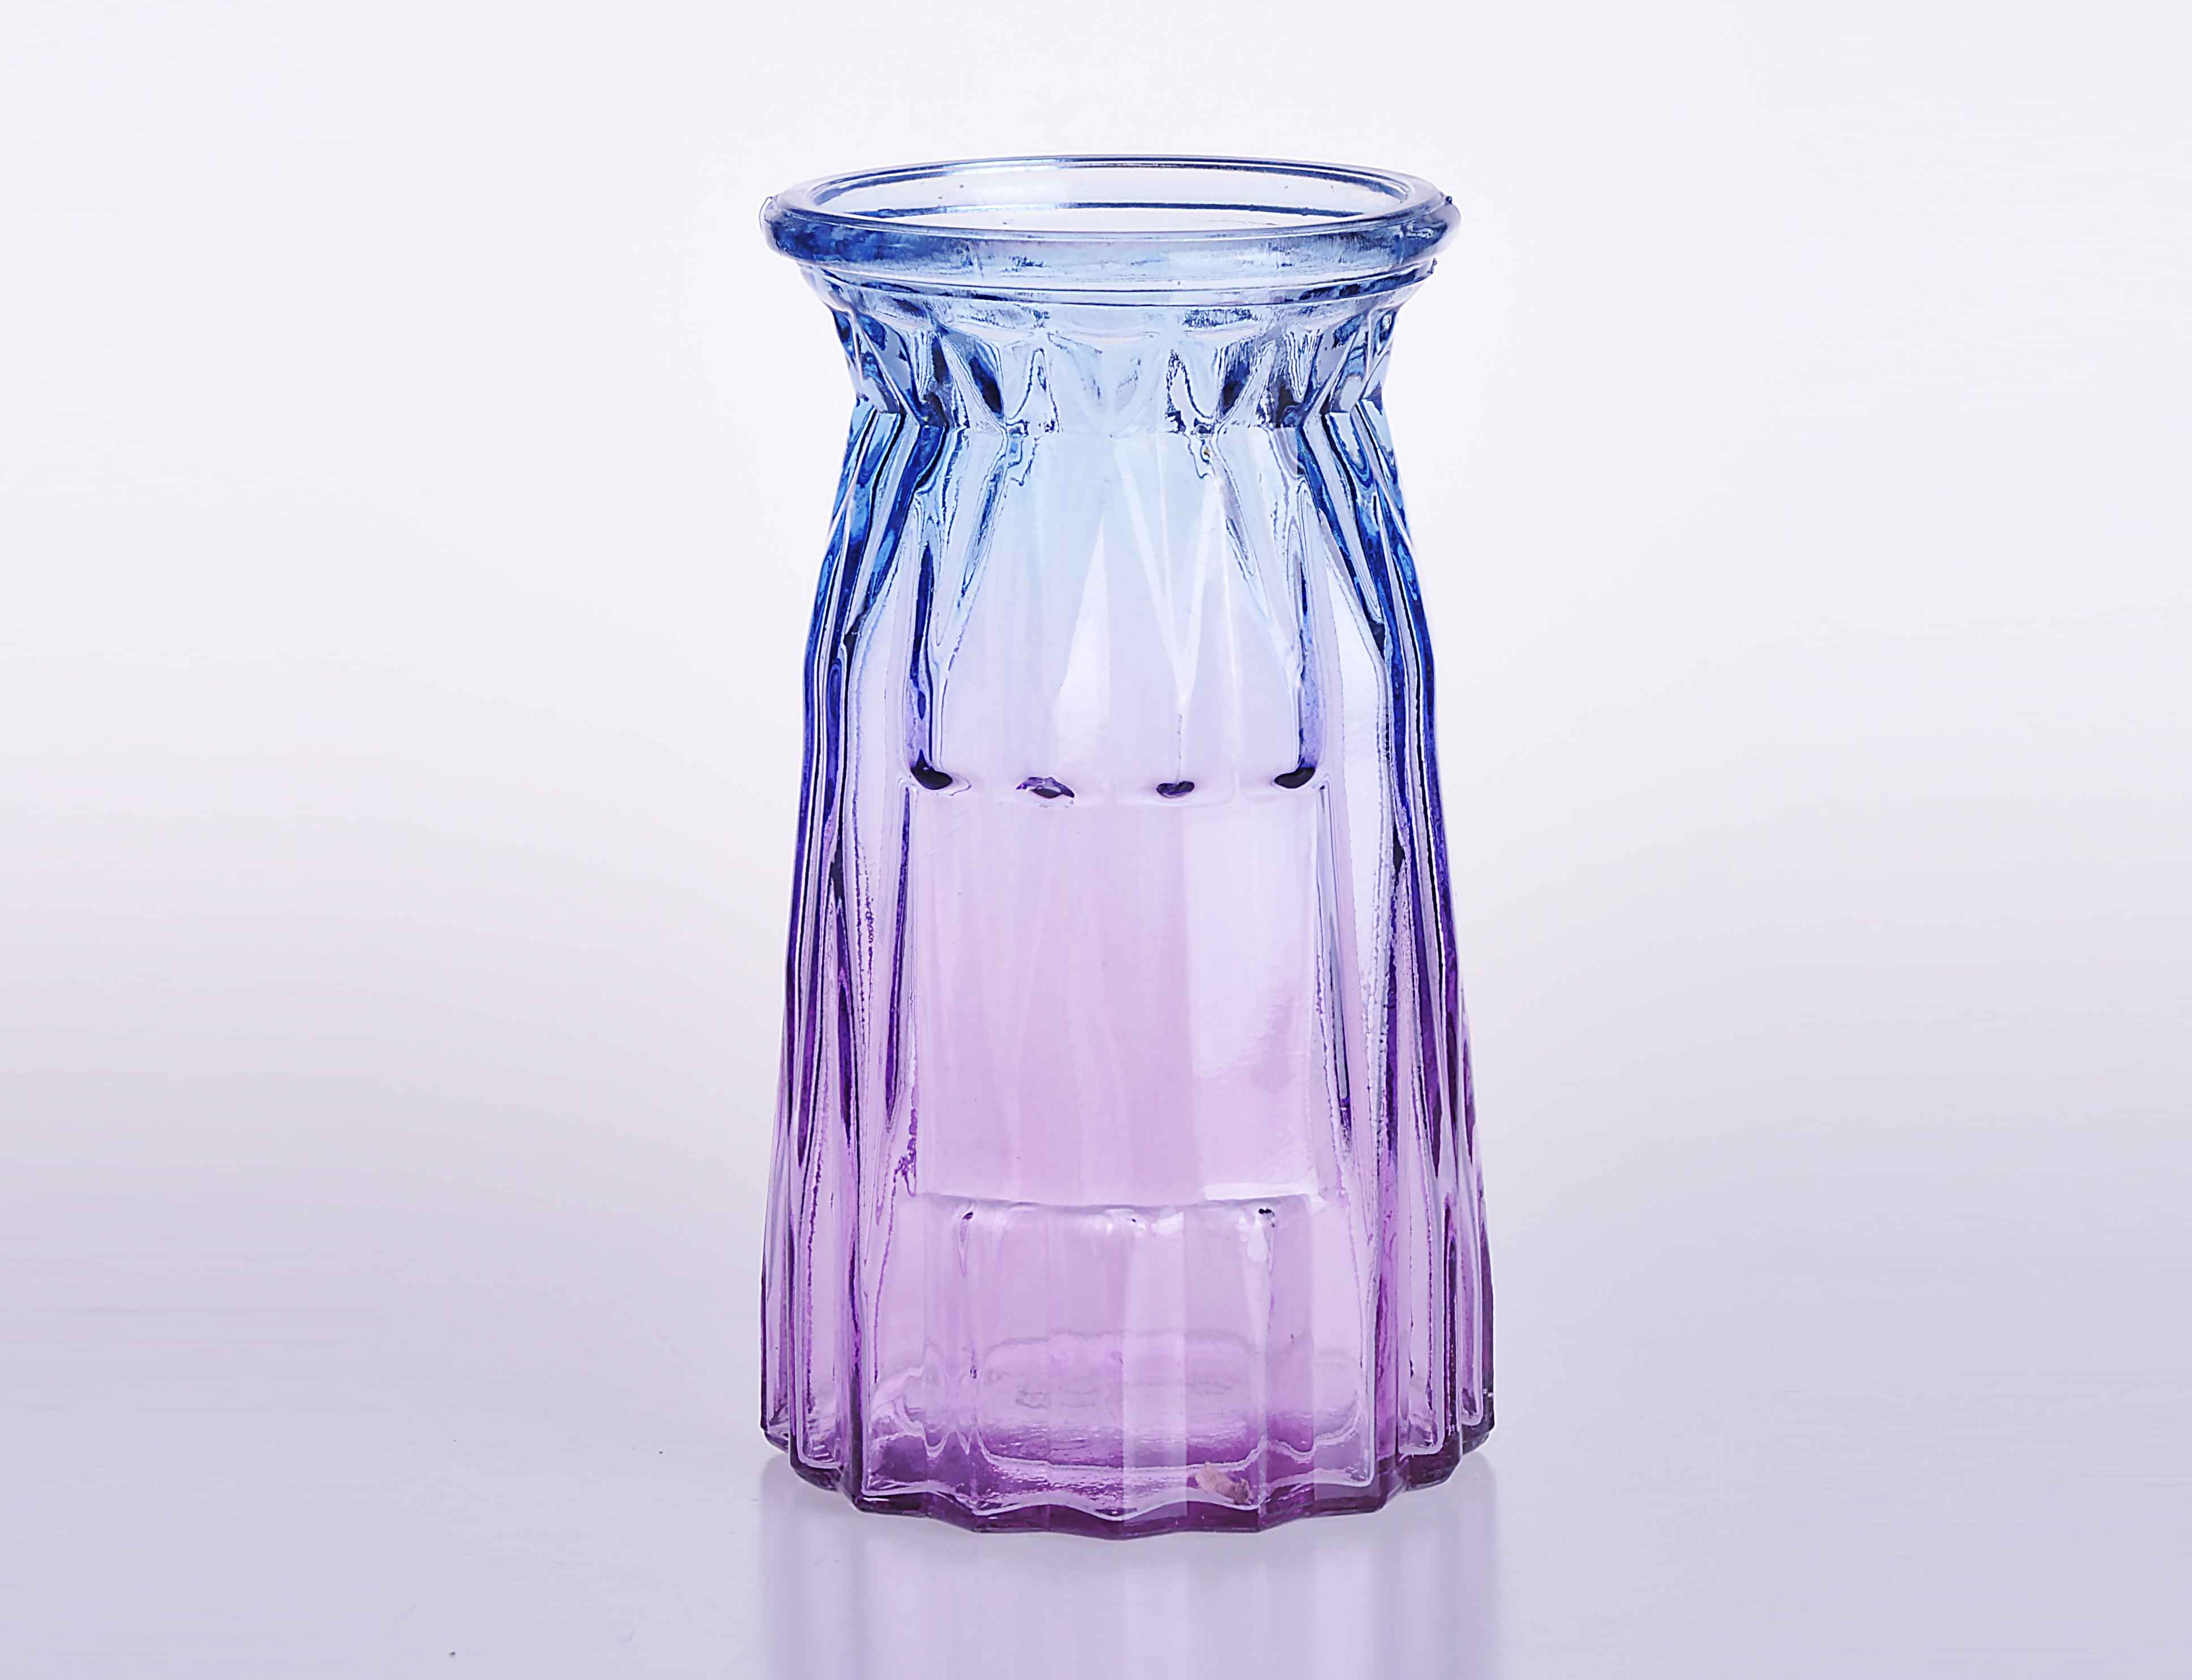 Crystal Flower Vase with glass handle in gradient ramp